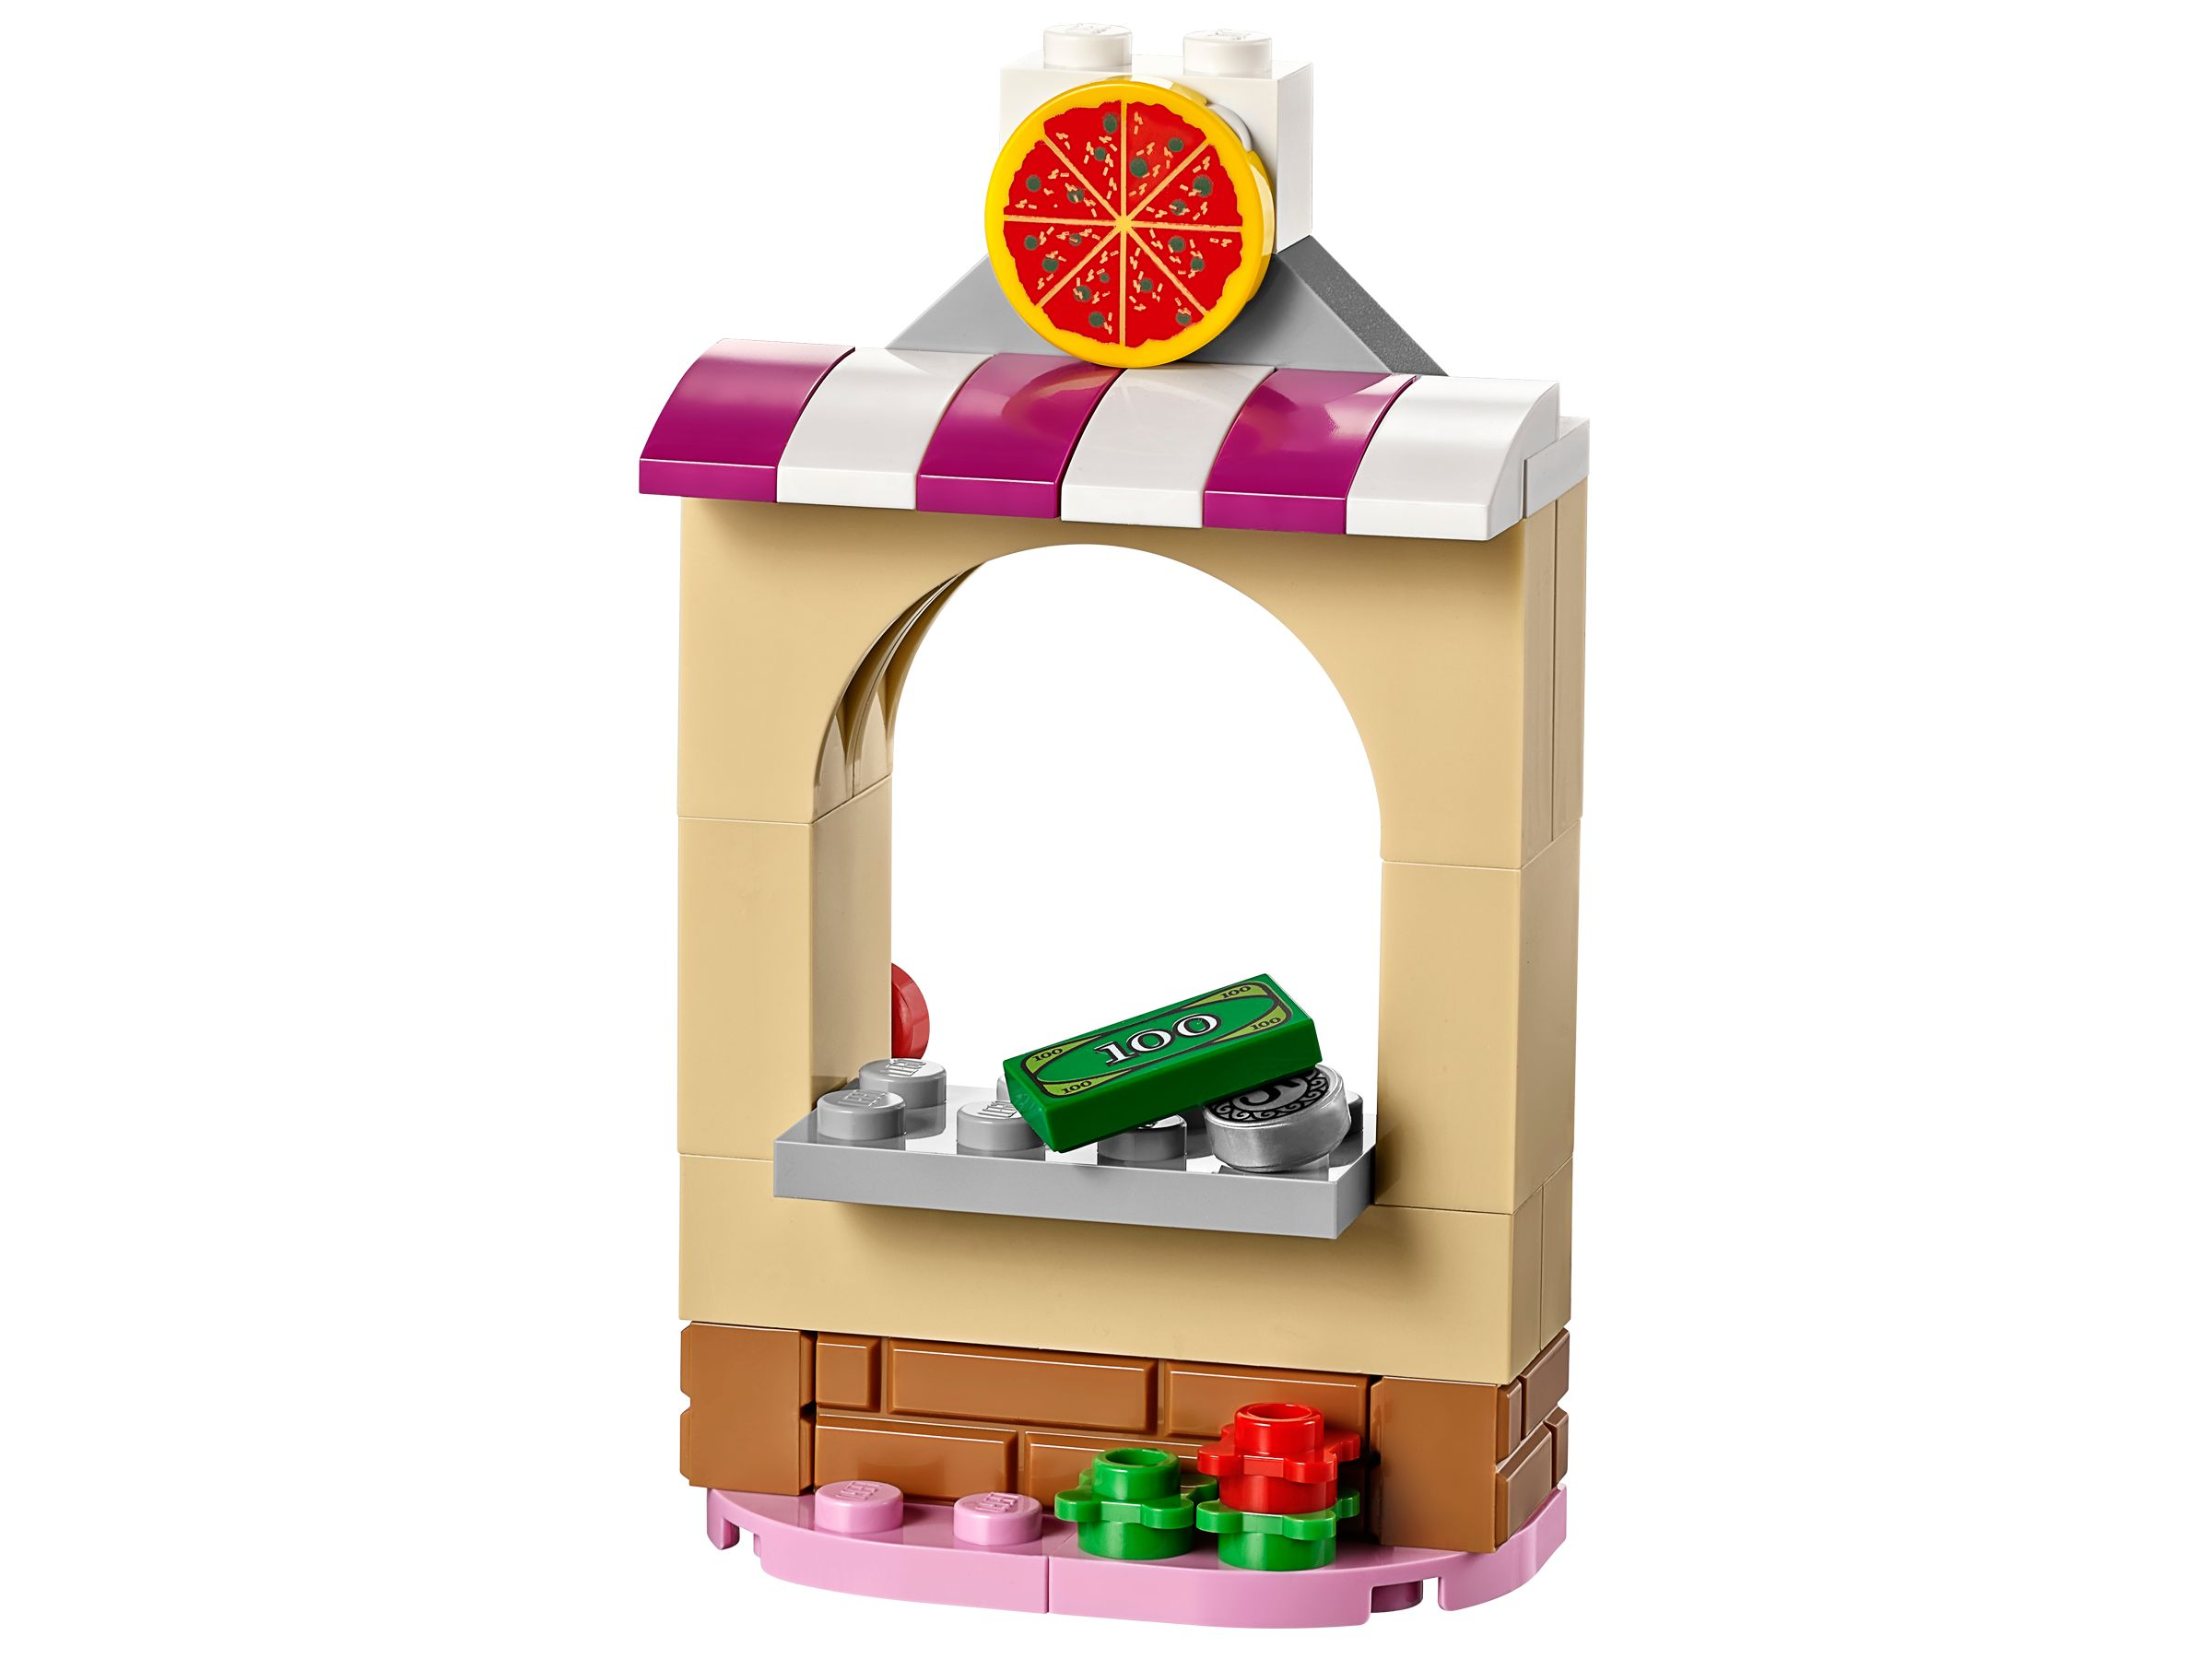 LEGO Friends 41092 Stephanies Pizzeria LEGO_41092_alt2.jpg